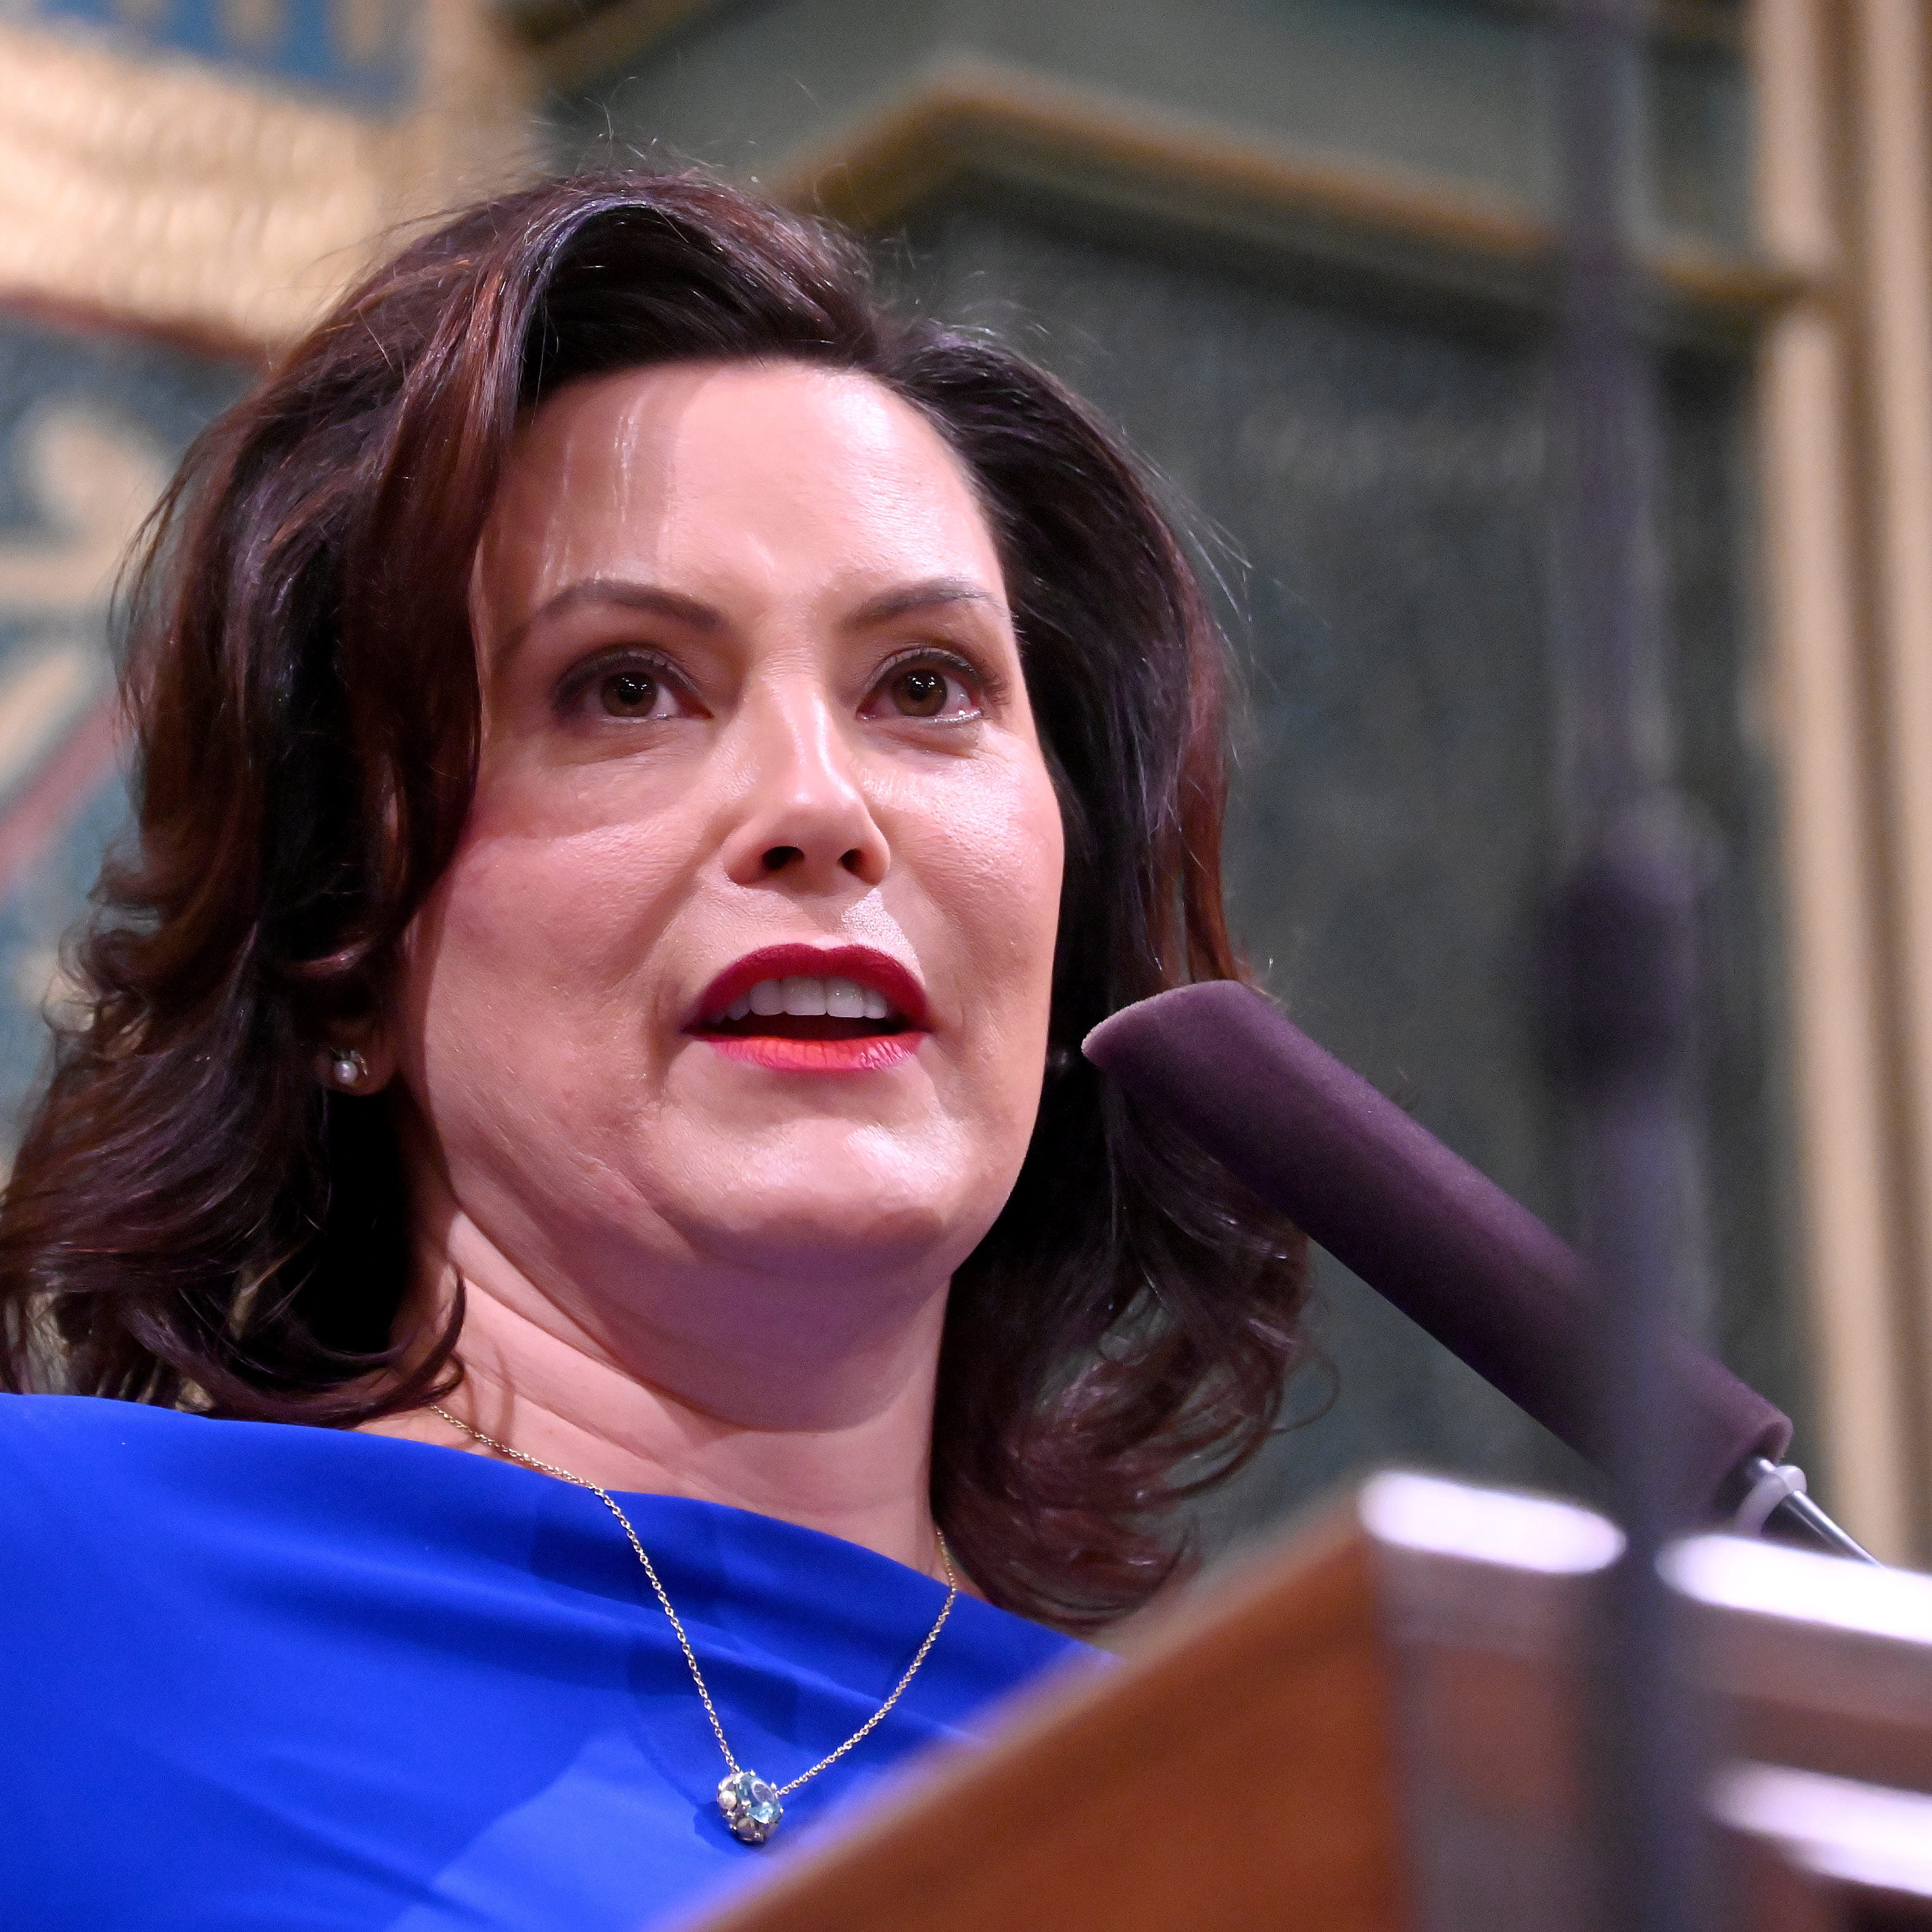 Opinion: Whitmer misrepresented school funding woes